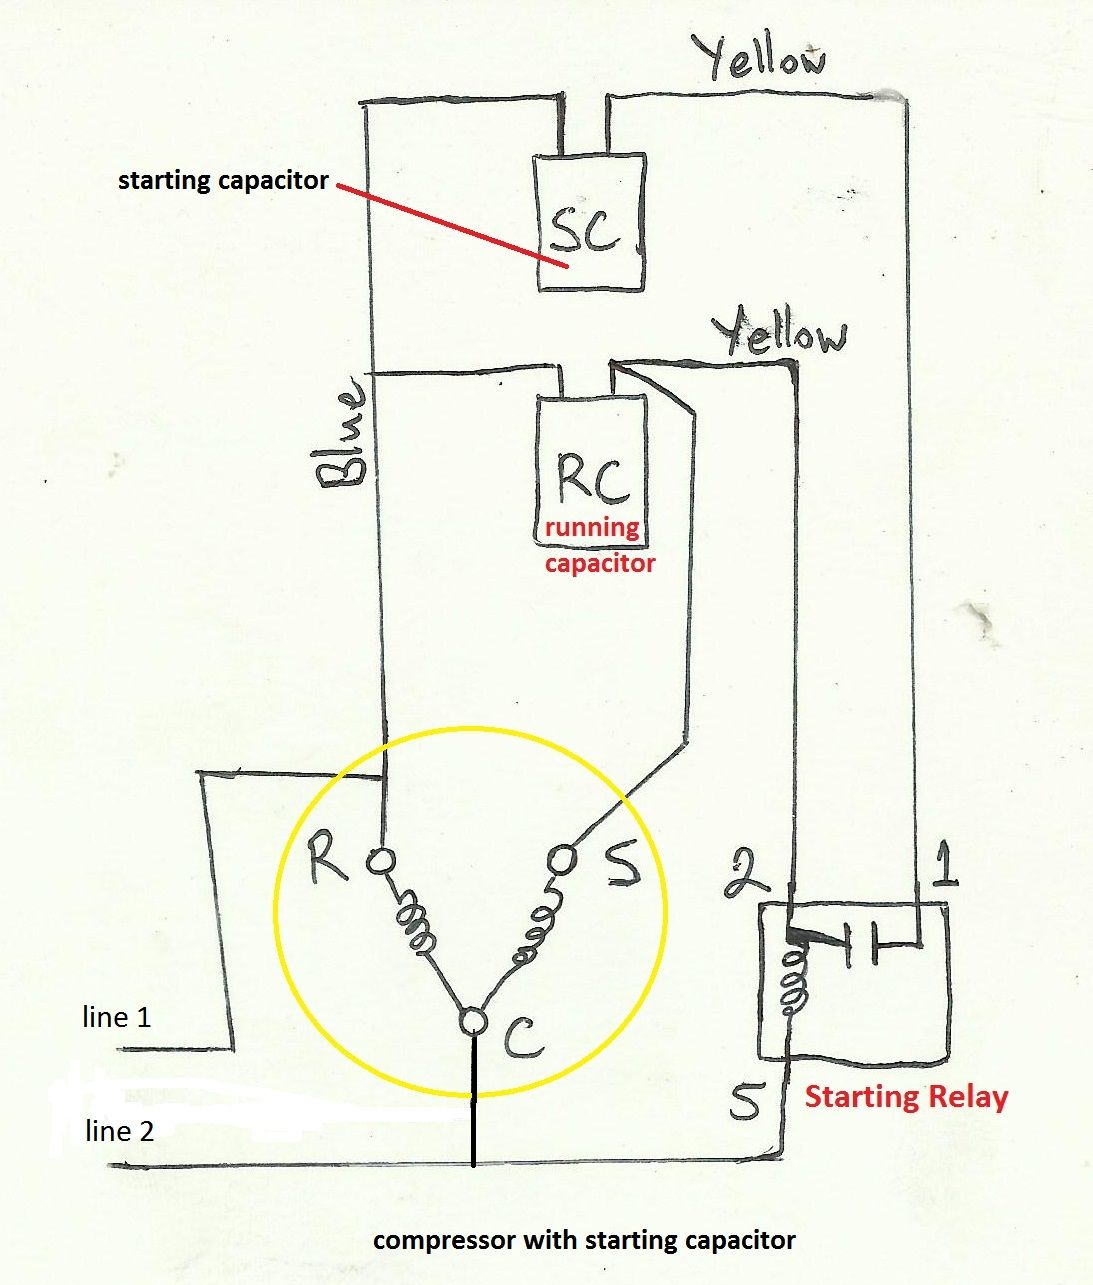 air compressor capacitor wiring diagram before you call a ac repair rh pinterest com A C Compressor Wiring Diagram Compressor Start Capacitor Wiring Diagram